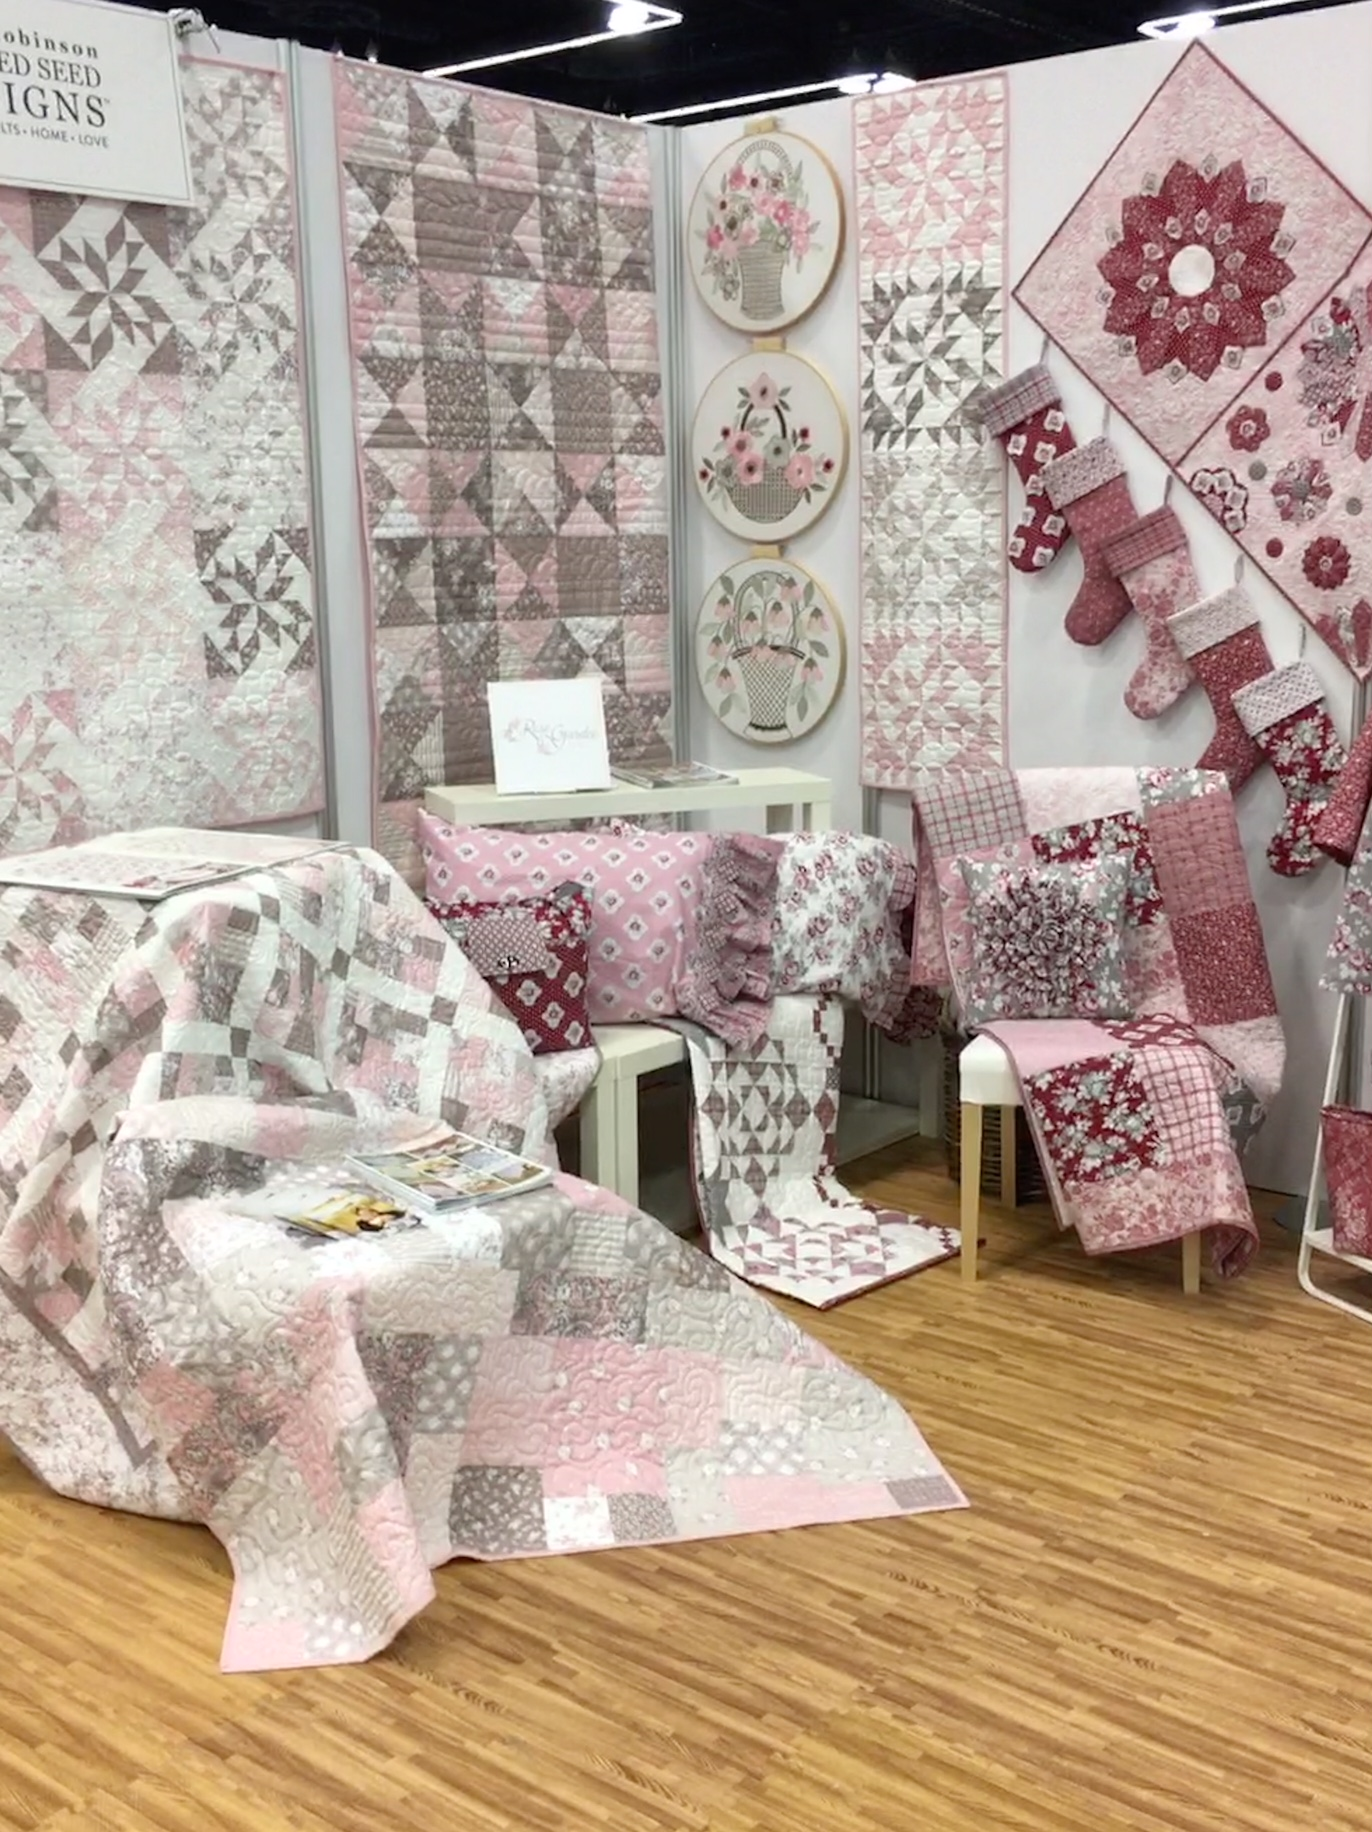 International Quilt Market Spring 2018, part 2